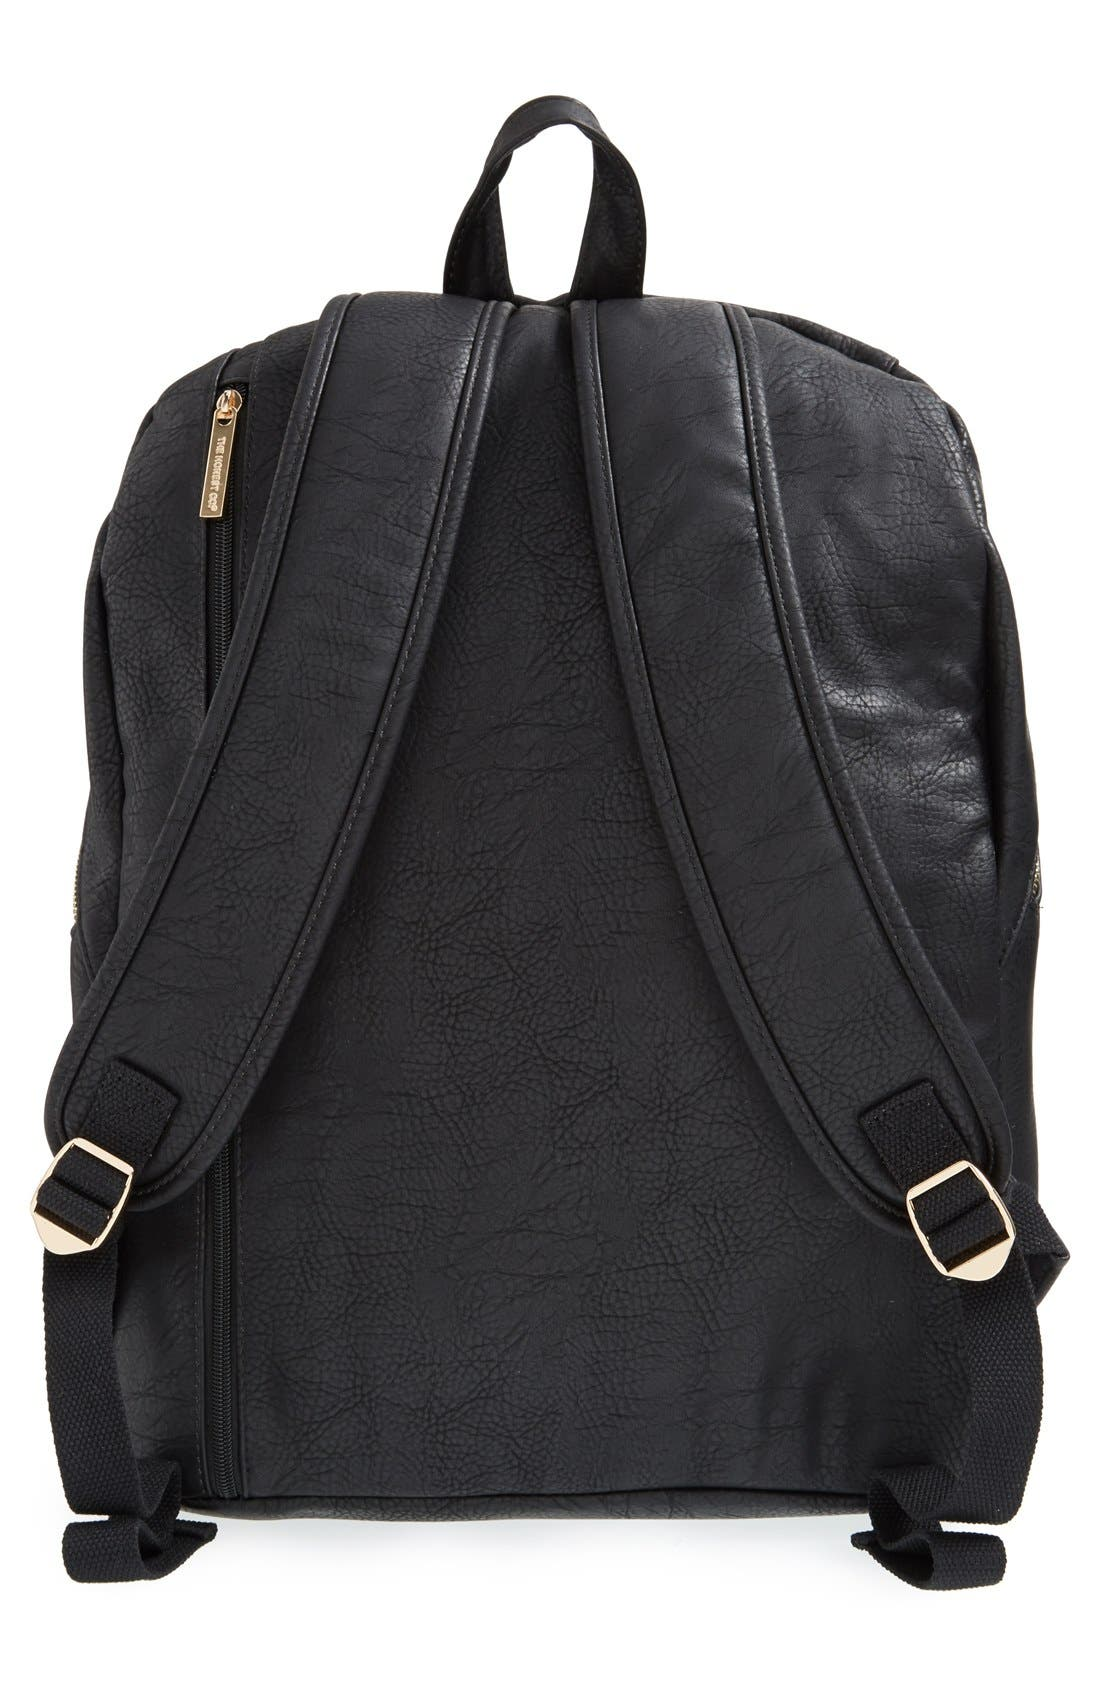 Alternate Image 3  - The Honest Company 'City' Faux Leather Diaper Backpack